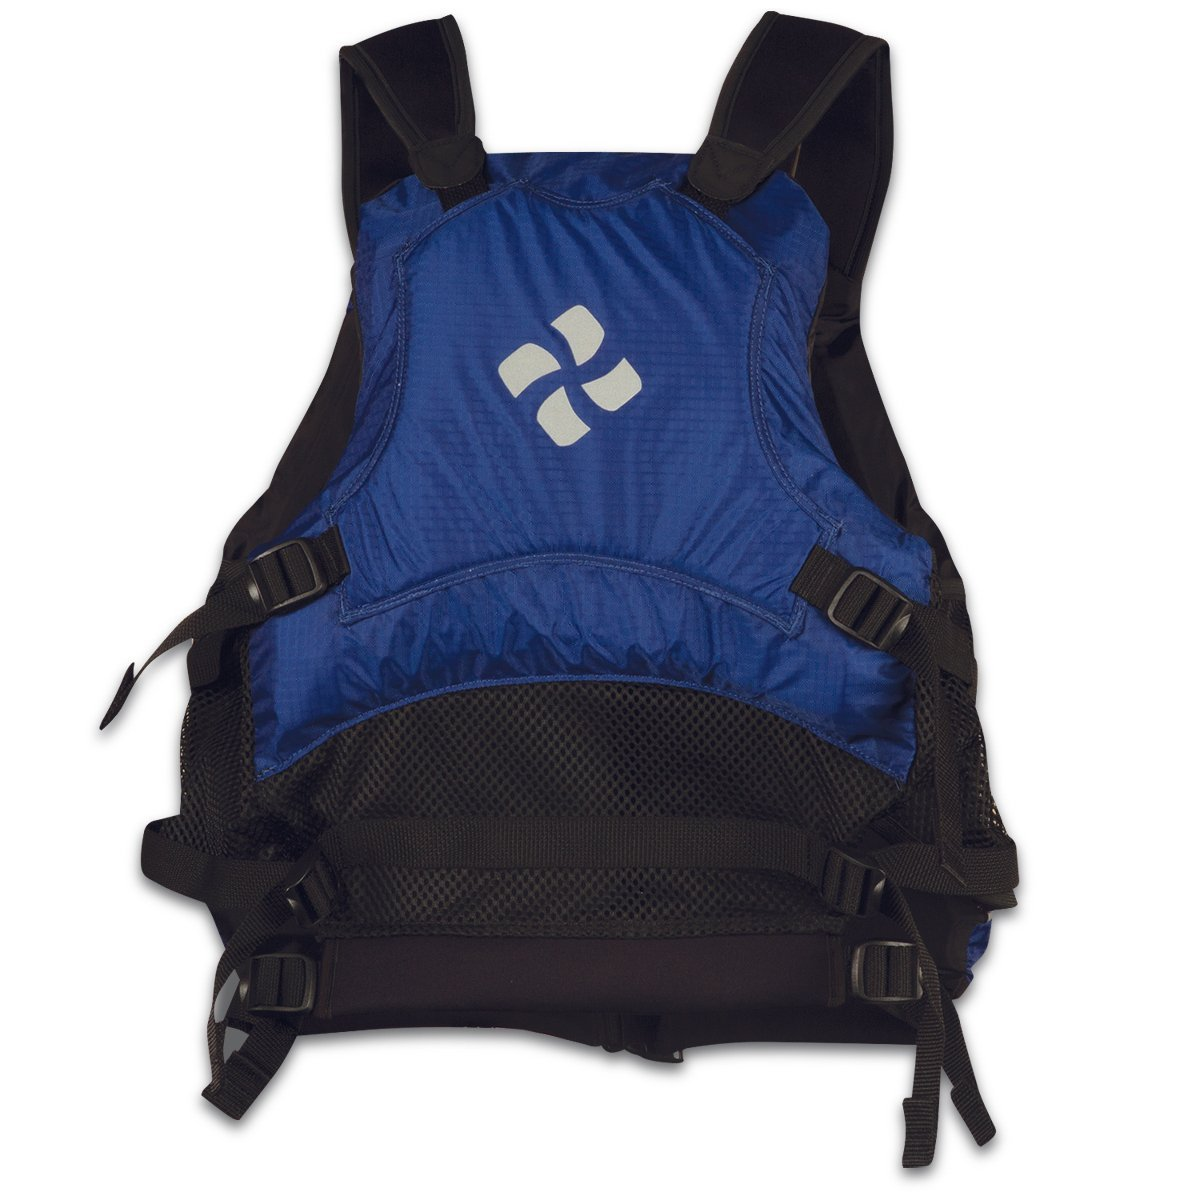 pfd_equinox_dlx_blue_back